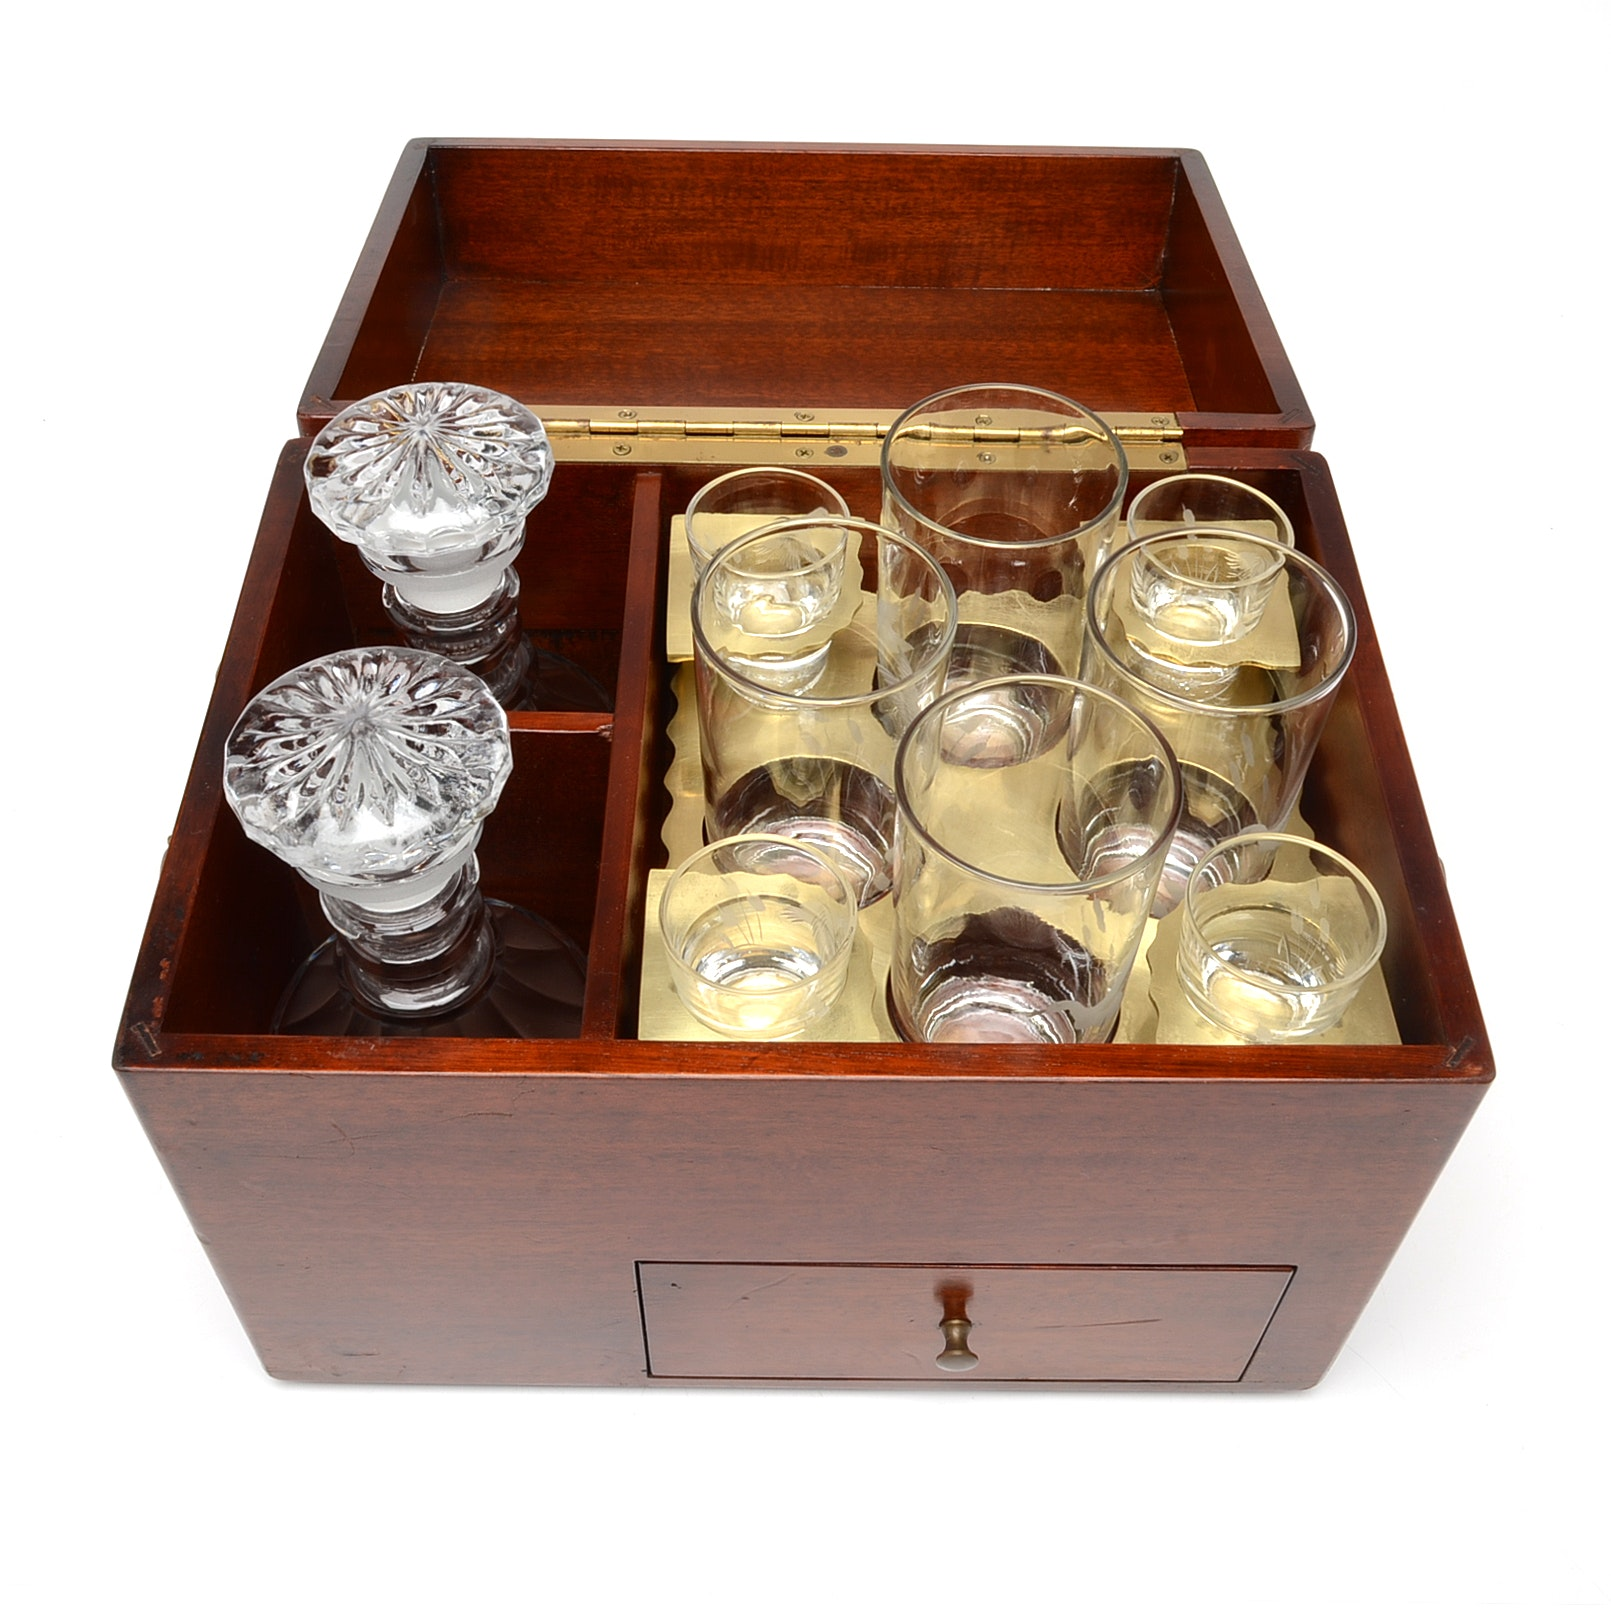 Mahogany Liquor Chest with Decanters and Barware by Federal Glass